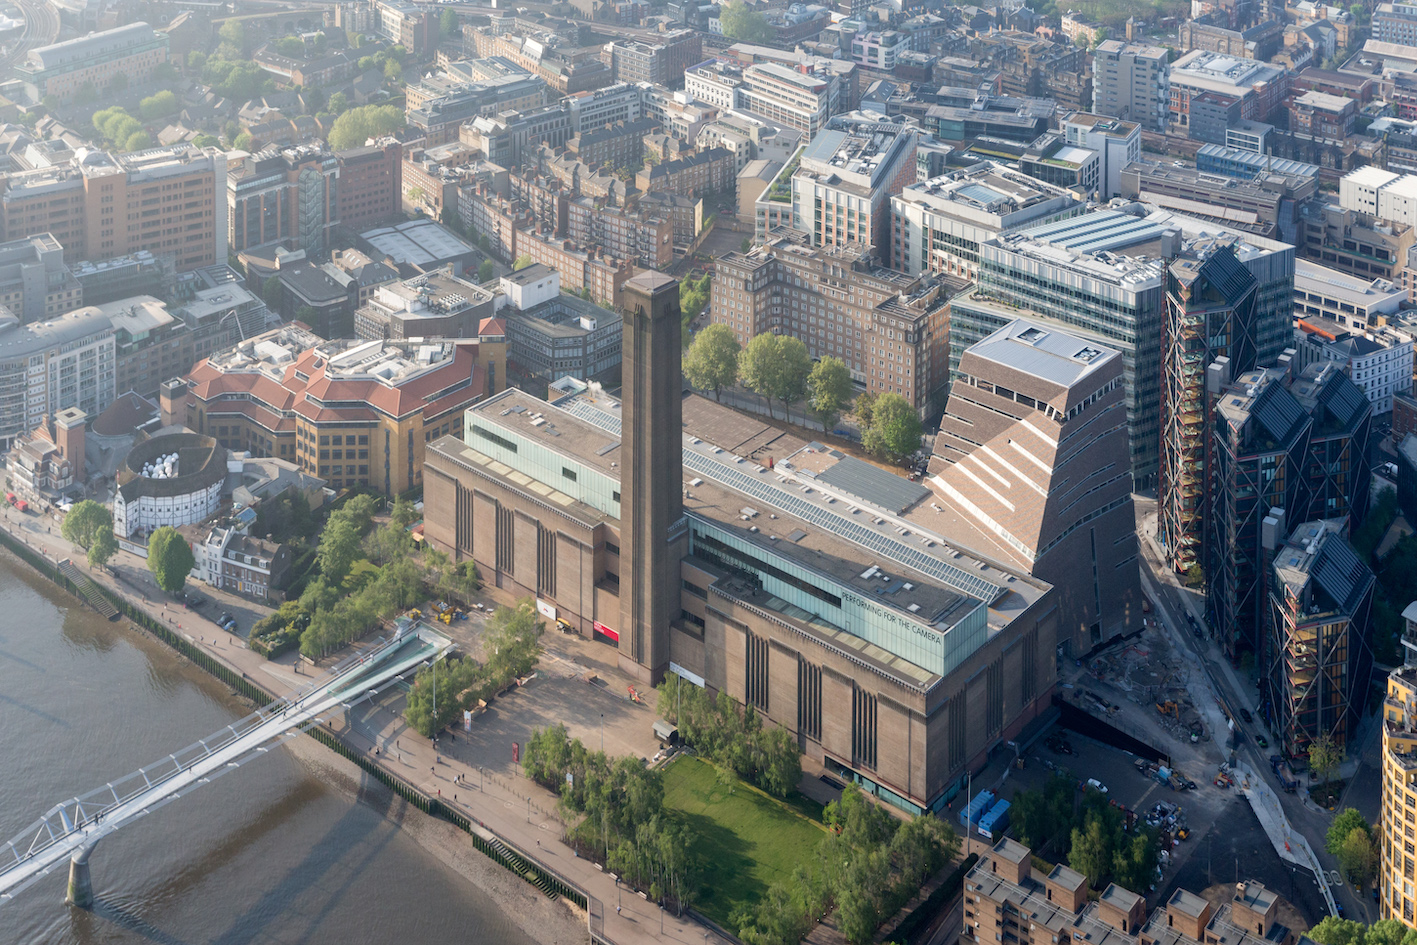 Tate Modern overtakes British Museum as most popular